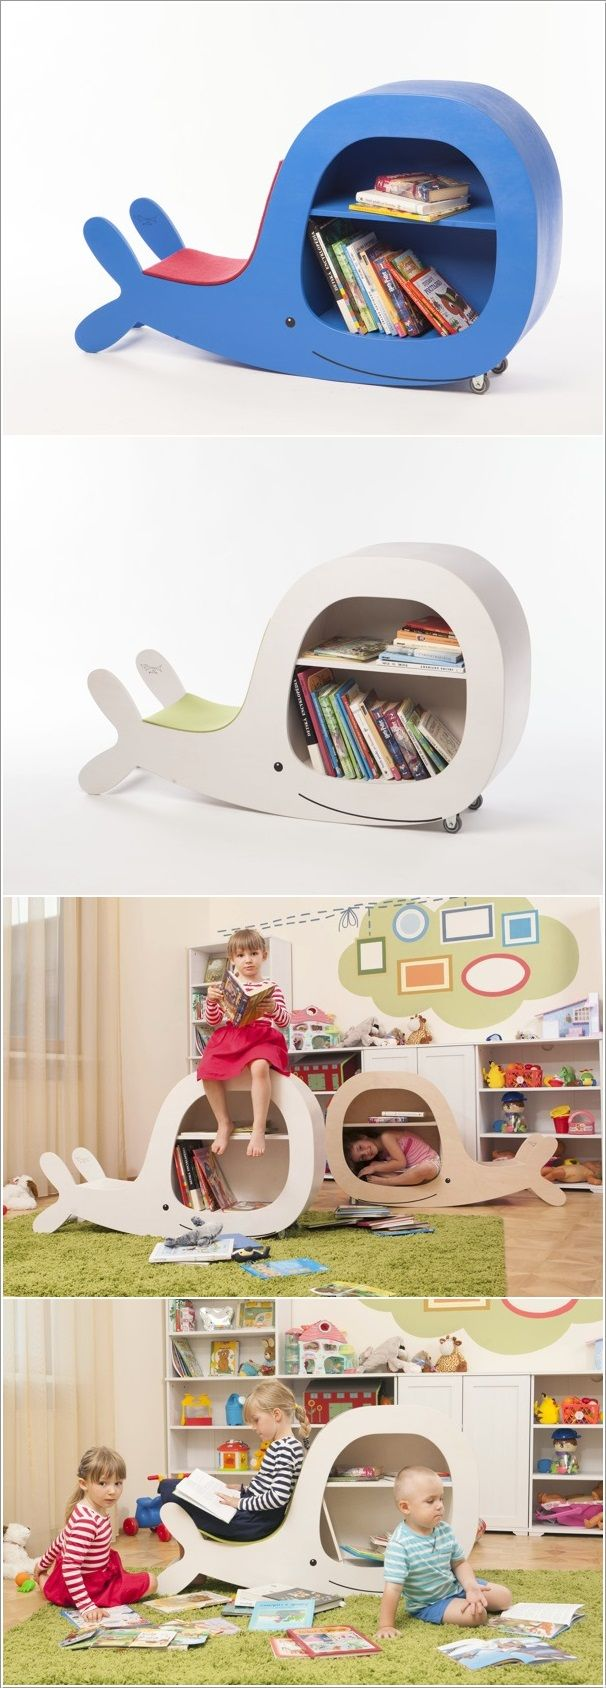 Whale bookshelves for the kids 39 room craft and diy for Kinderzimmer einrichten kleinkind